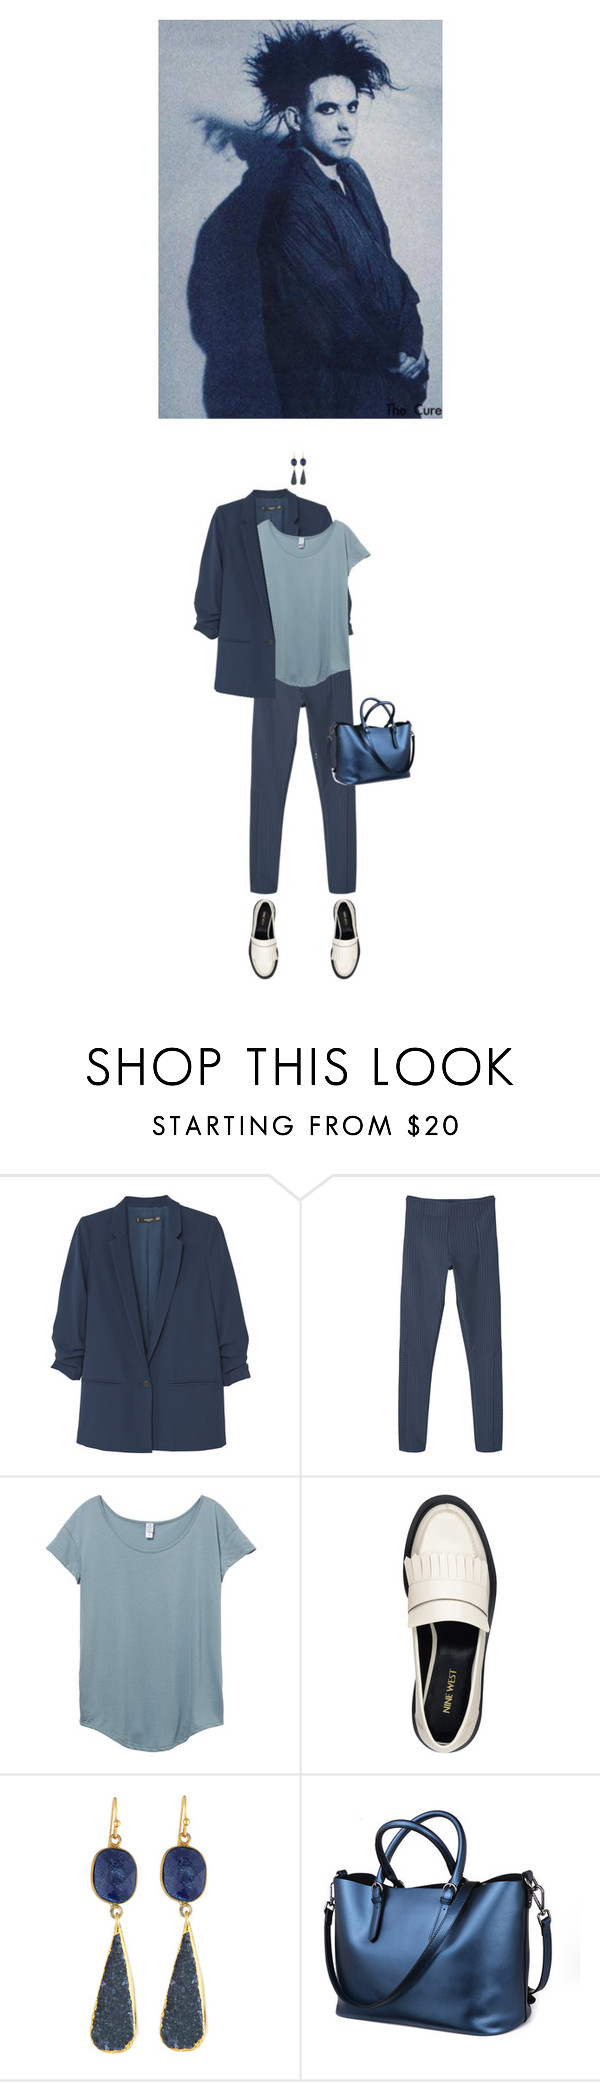 """""""Untitled #1885"""" by hologrammar ❤ liked on Polyvore featuring MANGO, Nine West, NAKAMOL, suit and robertsmith"""